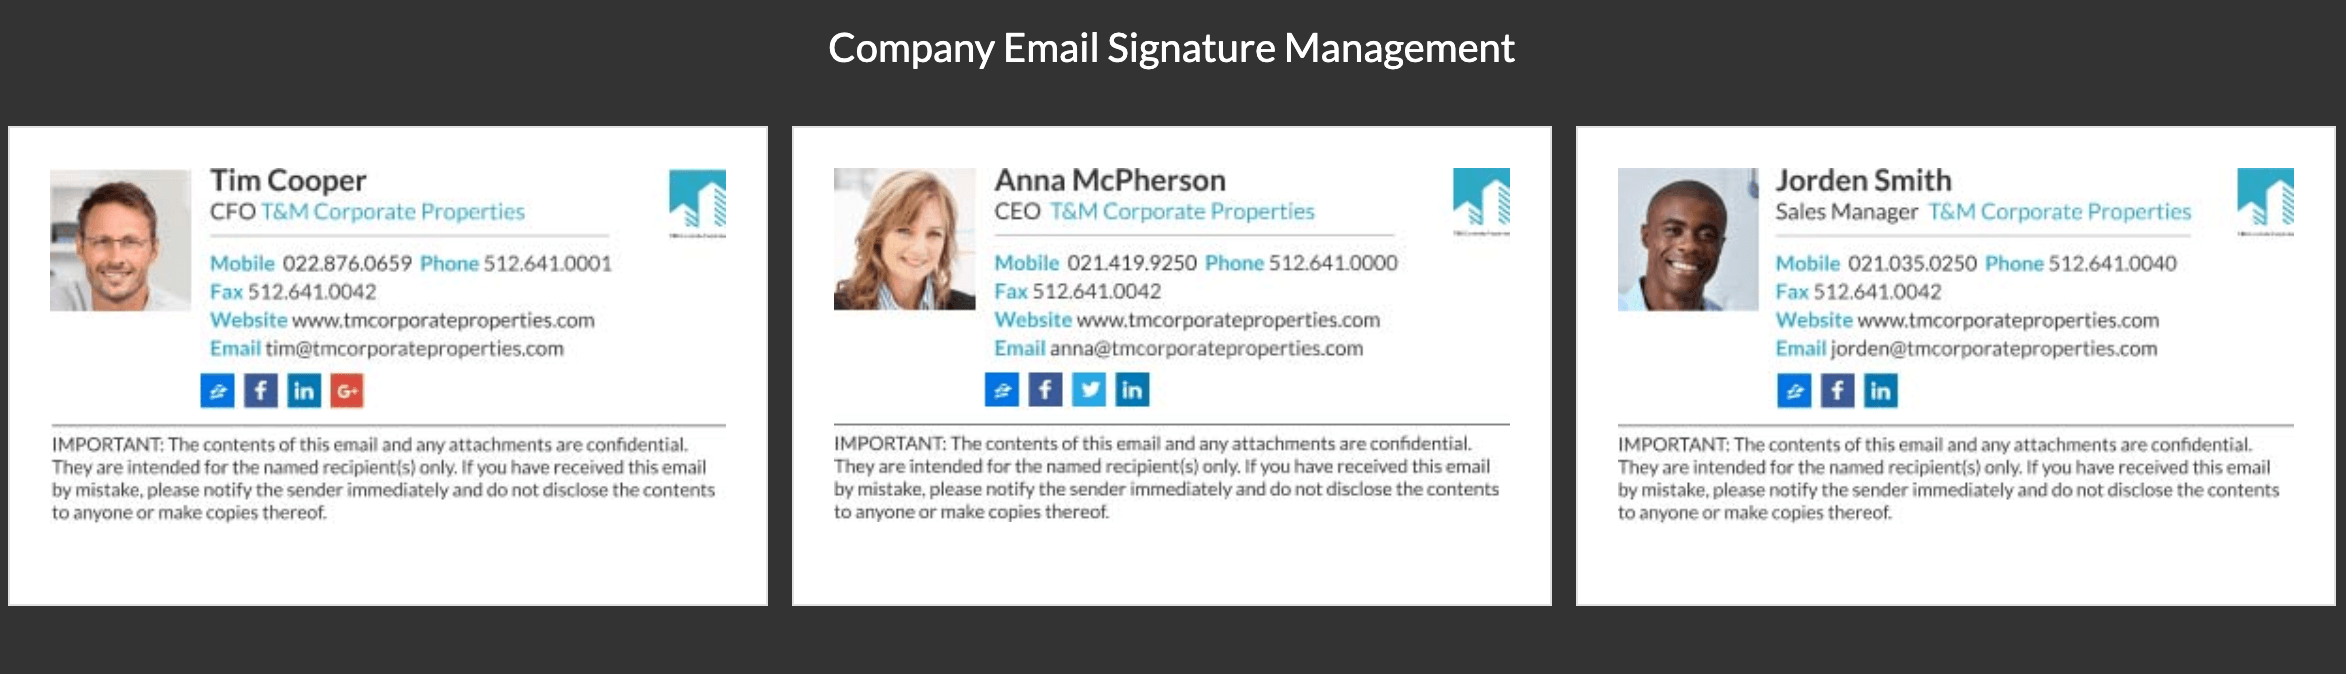 Three team email signatures created with WiseStamp.